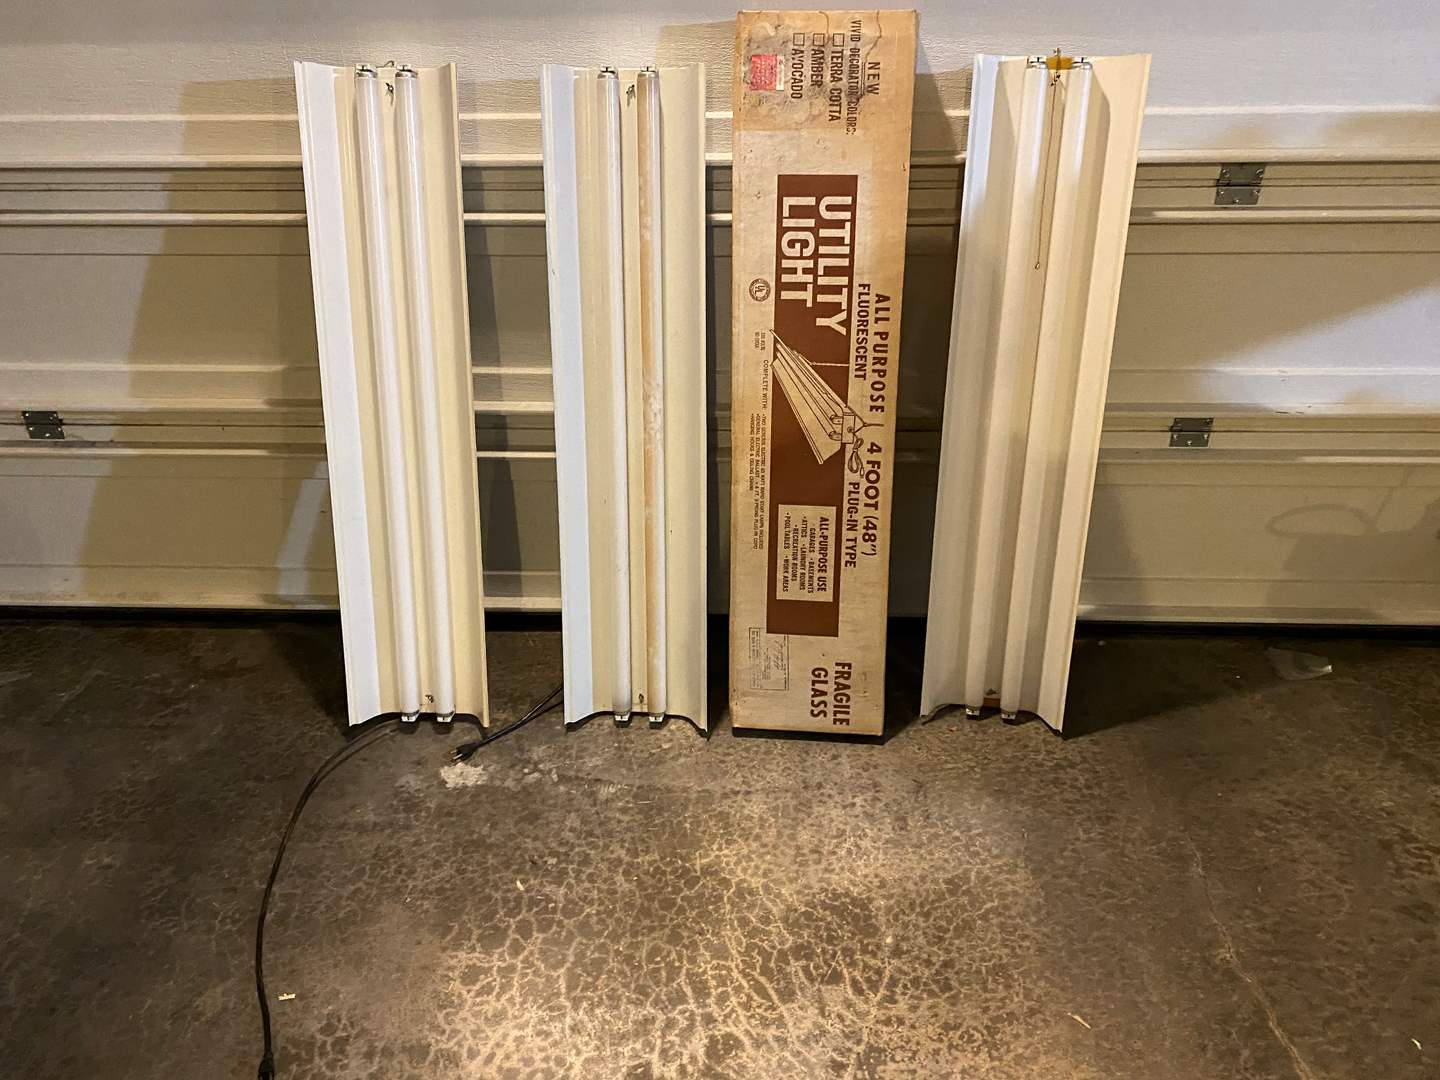 Lot # 357 - Four Fluorescent Shop Light Fixtures - 4' Long - One New in Box (main image)